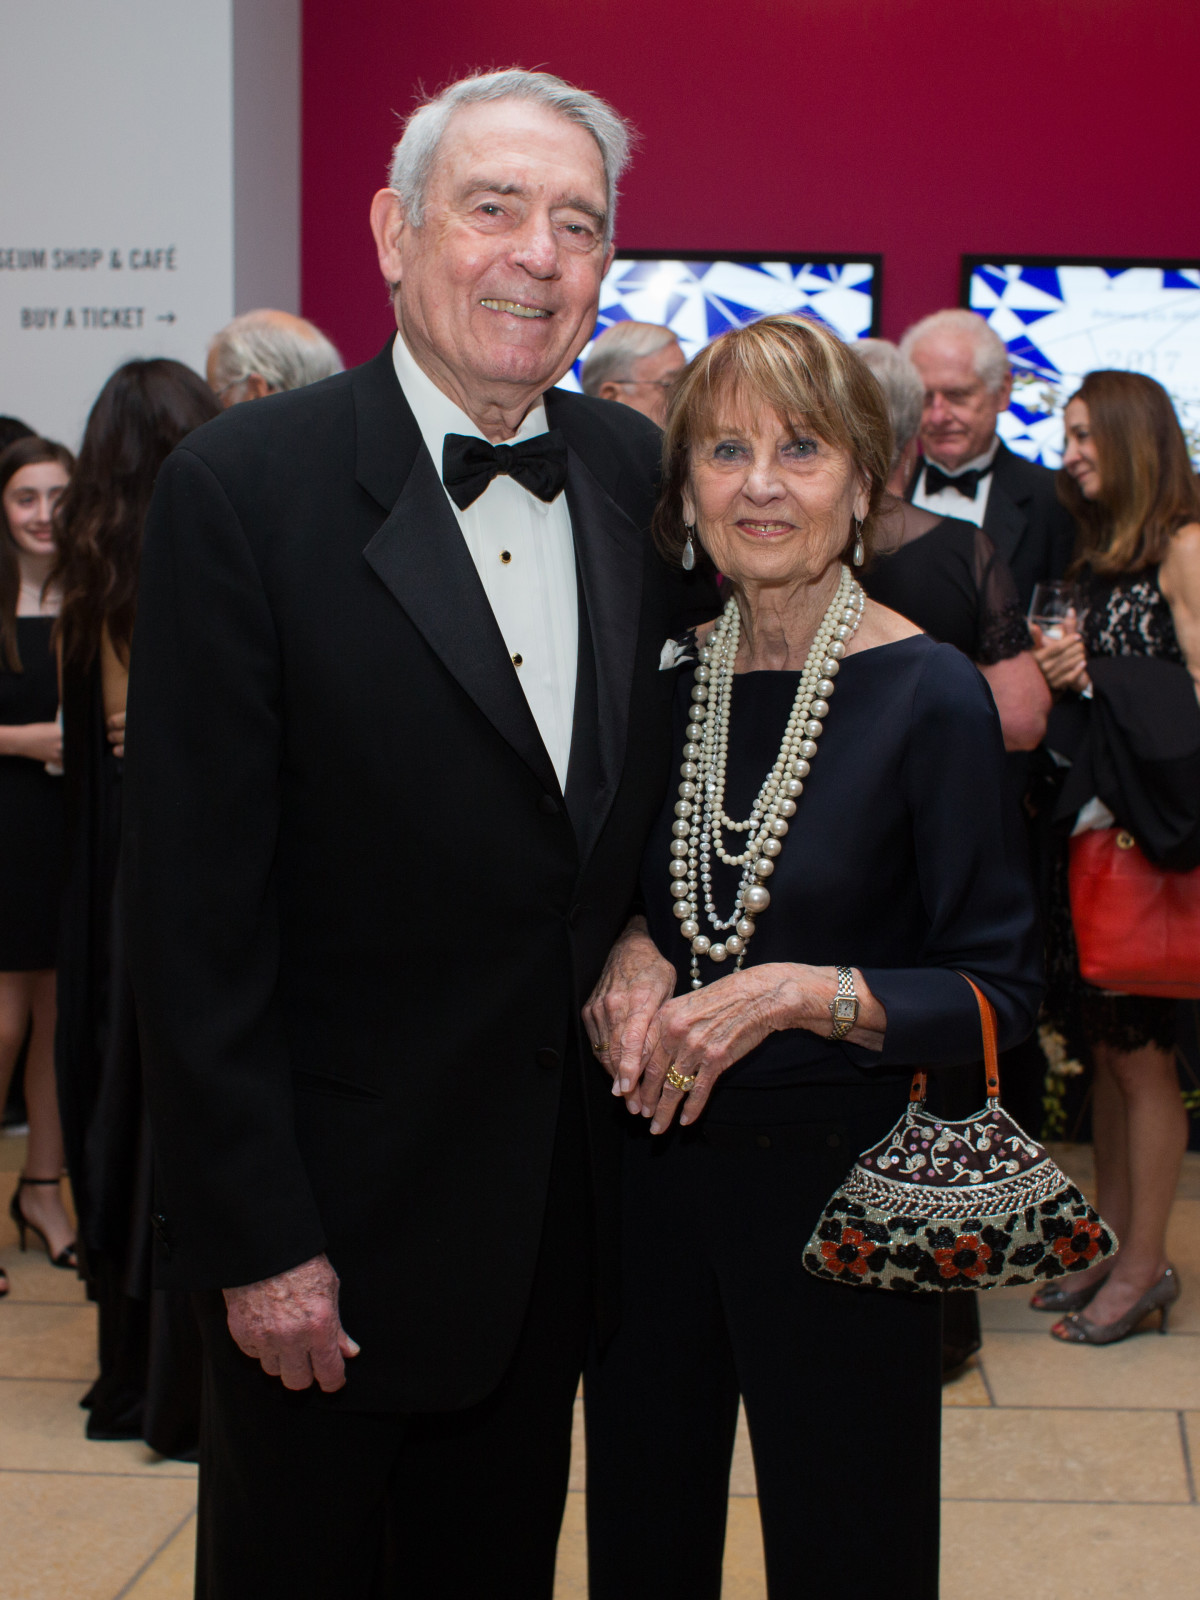 Blanton Museum of Art Gala 2017 Dan Rather Jean Rather